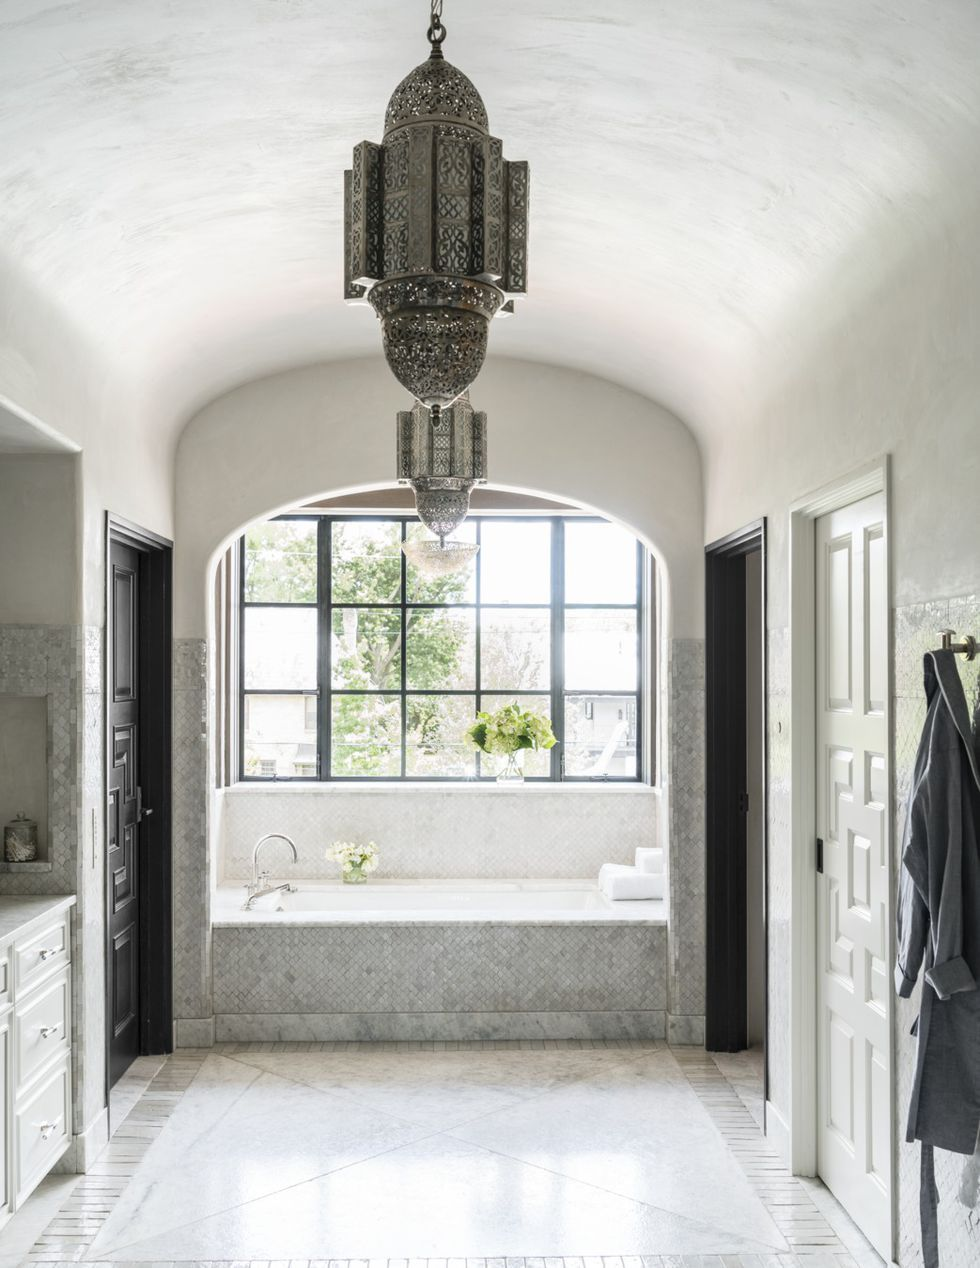 Stunning Bathroom Tile Ideas For Your Next Renovation ...